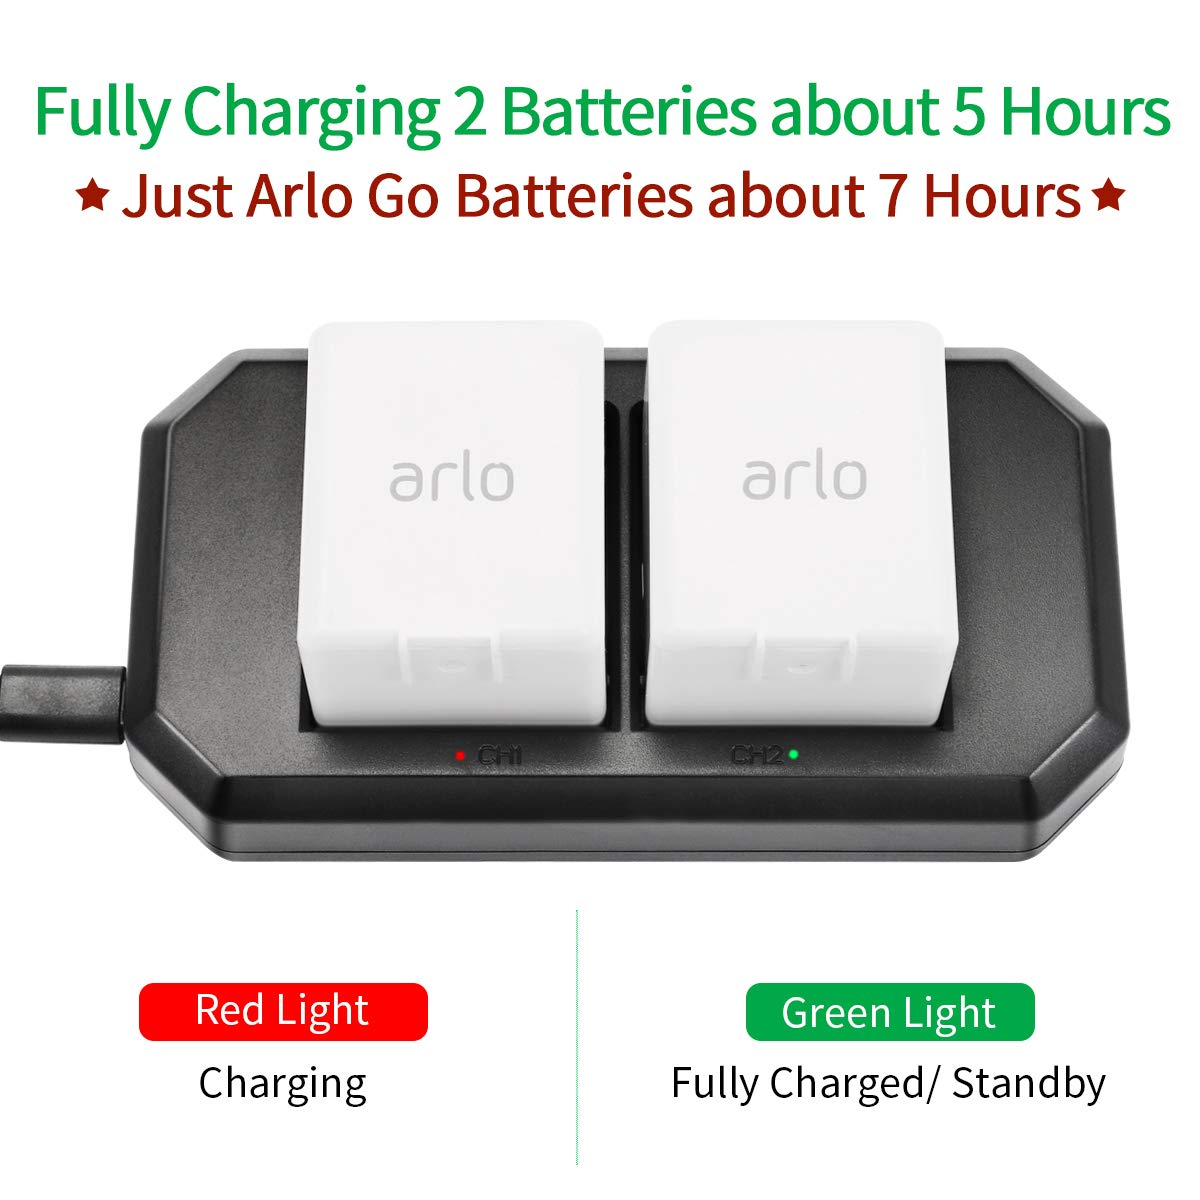 Keenstone Arlo Pro Battery Charger, 2 Port Charging Station with UK Plug for Arlo Pro, Arlo Pro 2, Arlo Go, Arlo Light Rechargeable Batteries